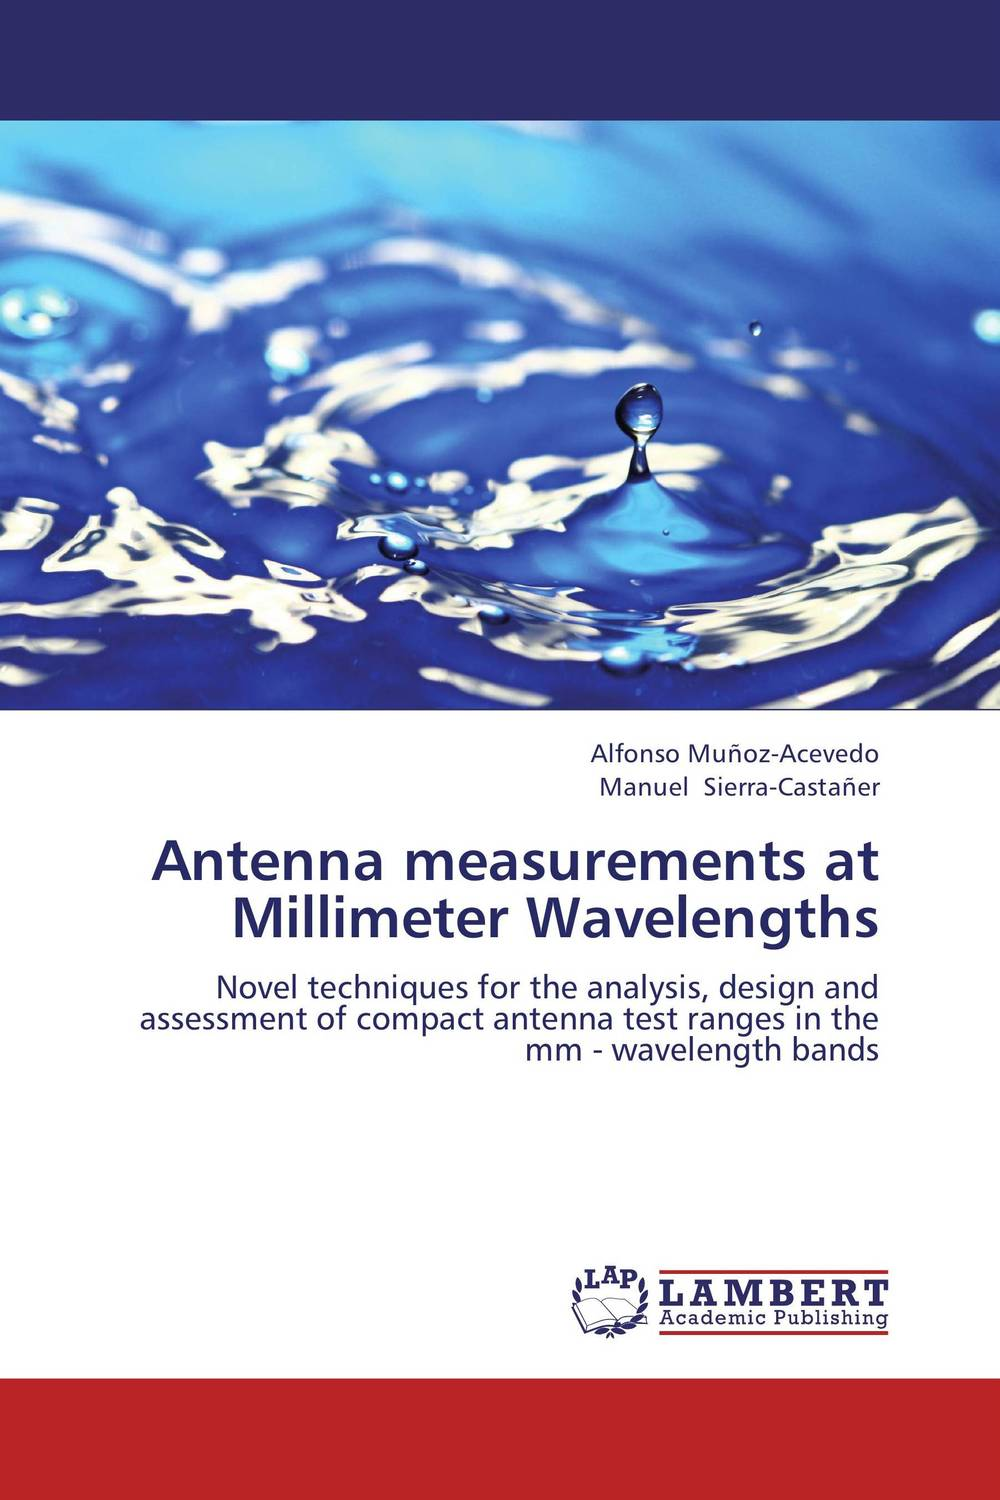 Antenna measurements at Millimeter Wavelengths